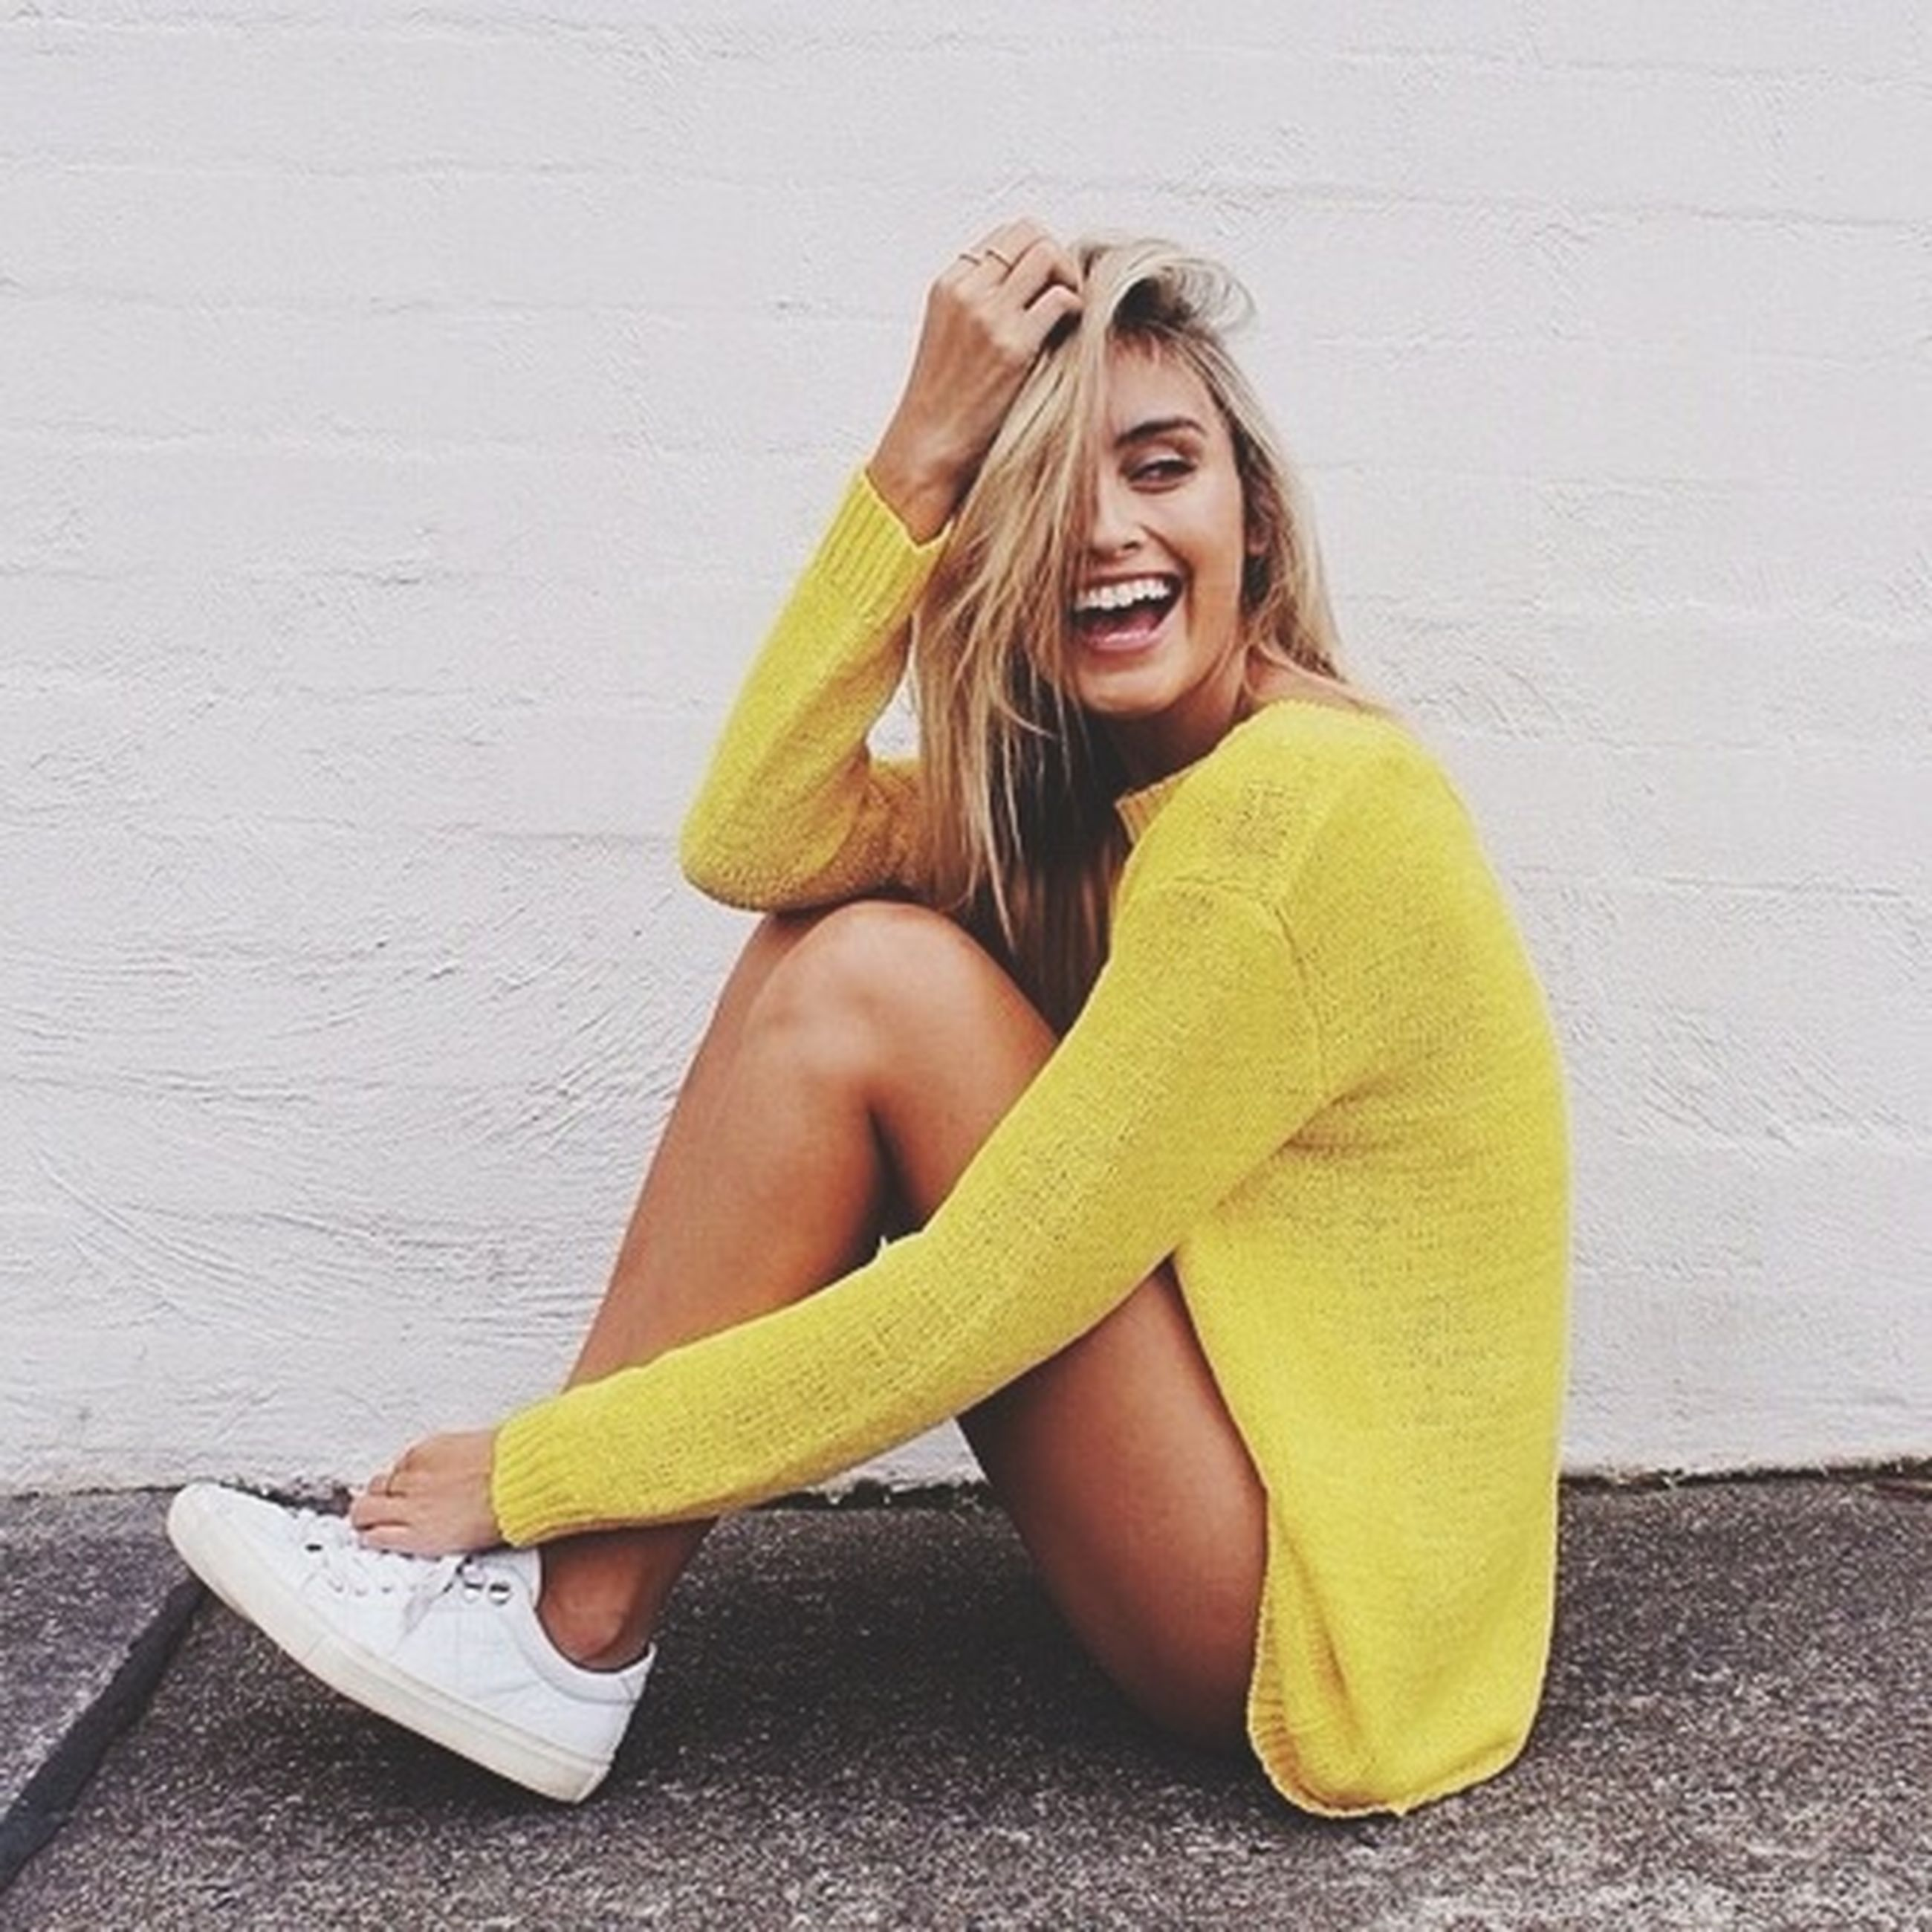 young adult, person, young women, front view, casual clothing, lifestyles, portrait, looking at camera, yellow, long hair, leisure activity, fashion, smiling, standing, holding, wall - building feature, dress